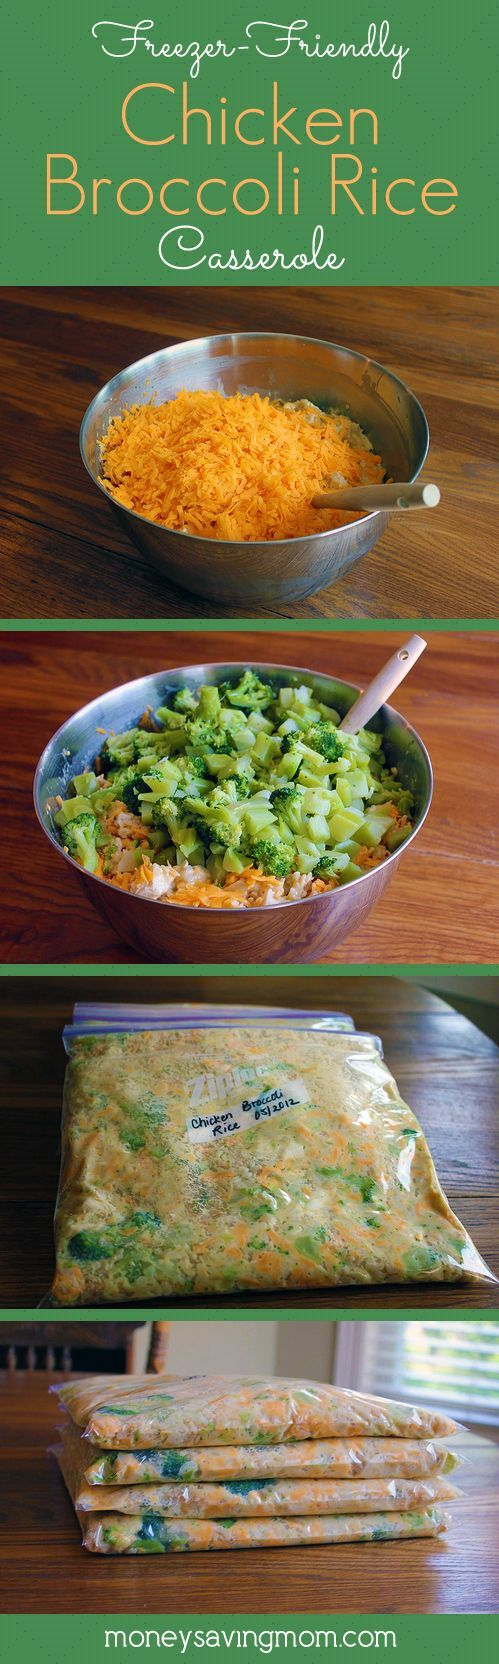 This Chicken Broccoli Rice Casserole recipe is delicious, filling, frugal, and so freezer-friendly!